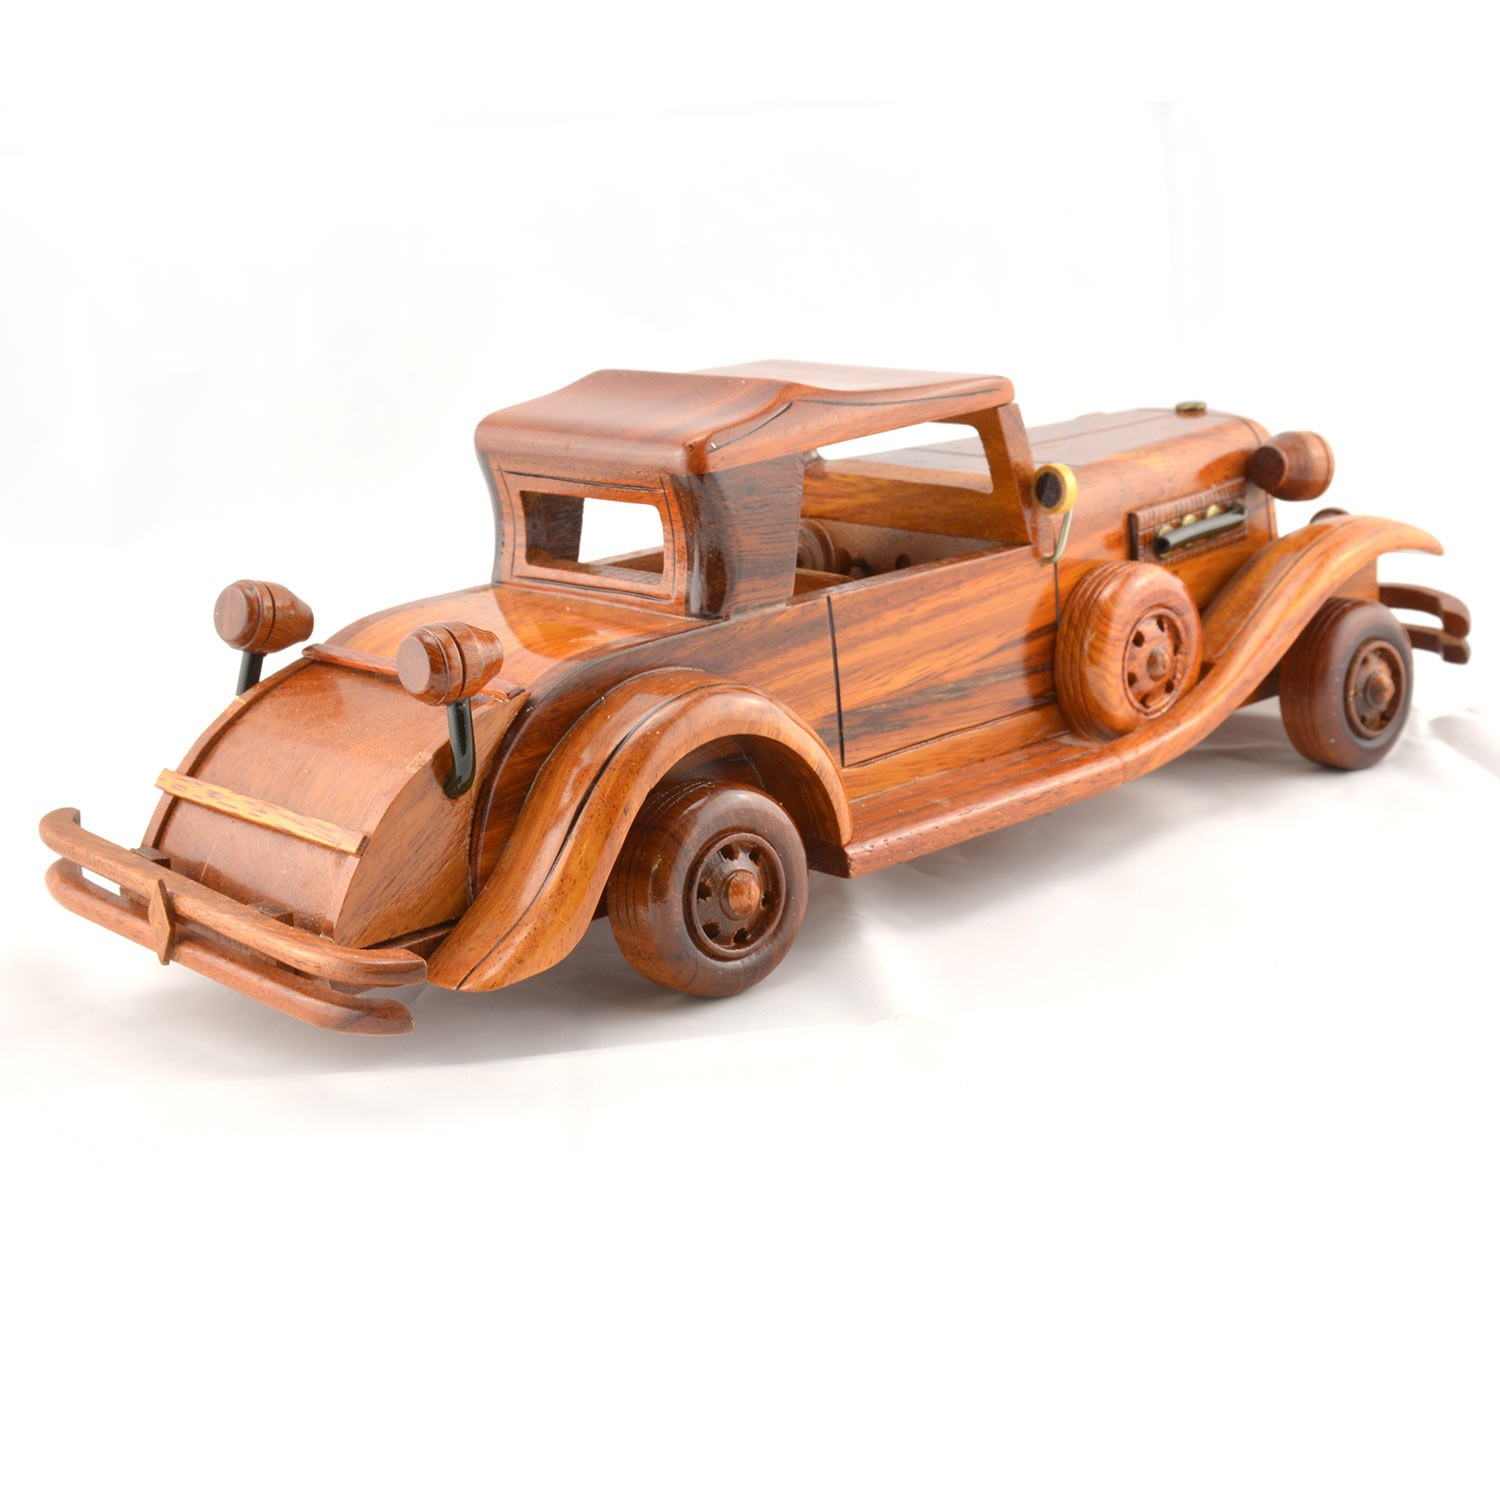 Duesenberg Wooden Car Model (Citroen) | 1932-1937 Wooden Scale ...